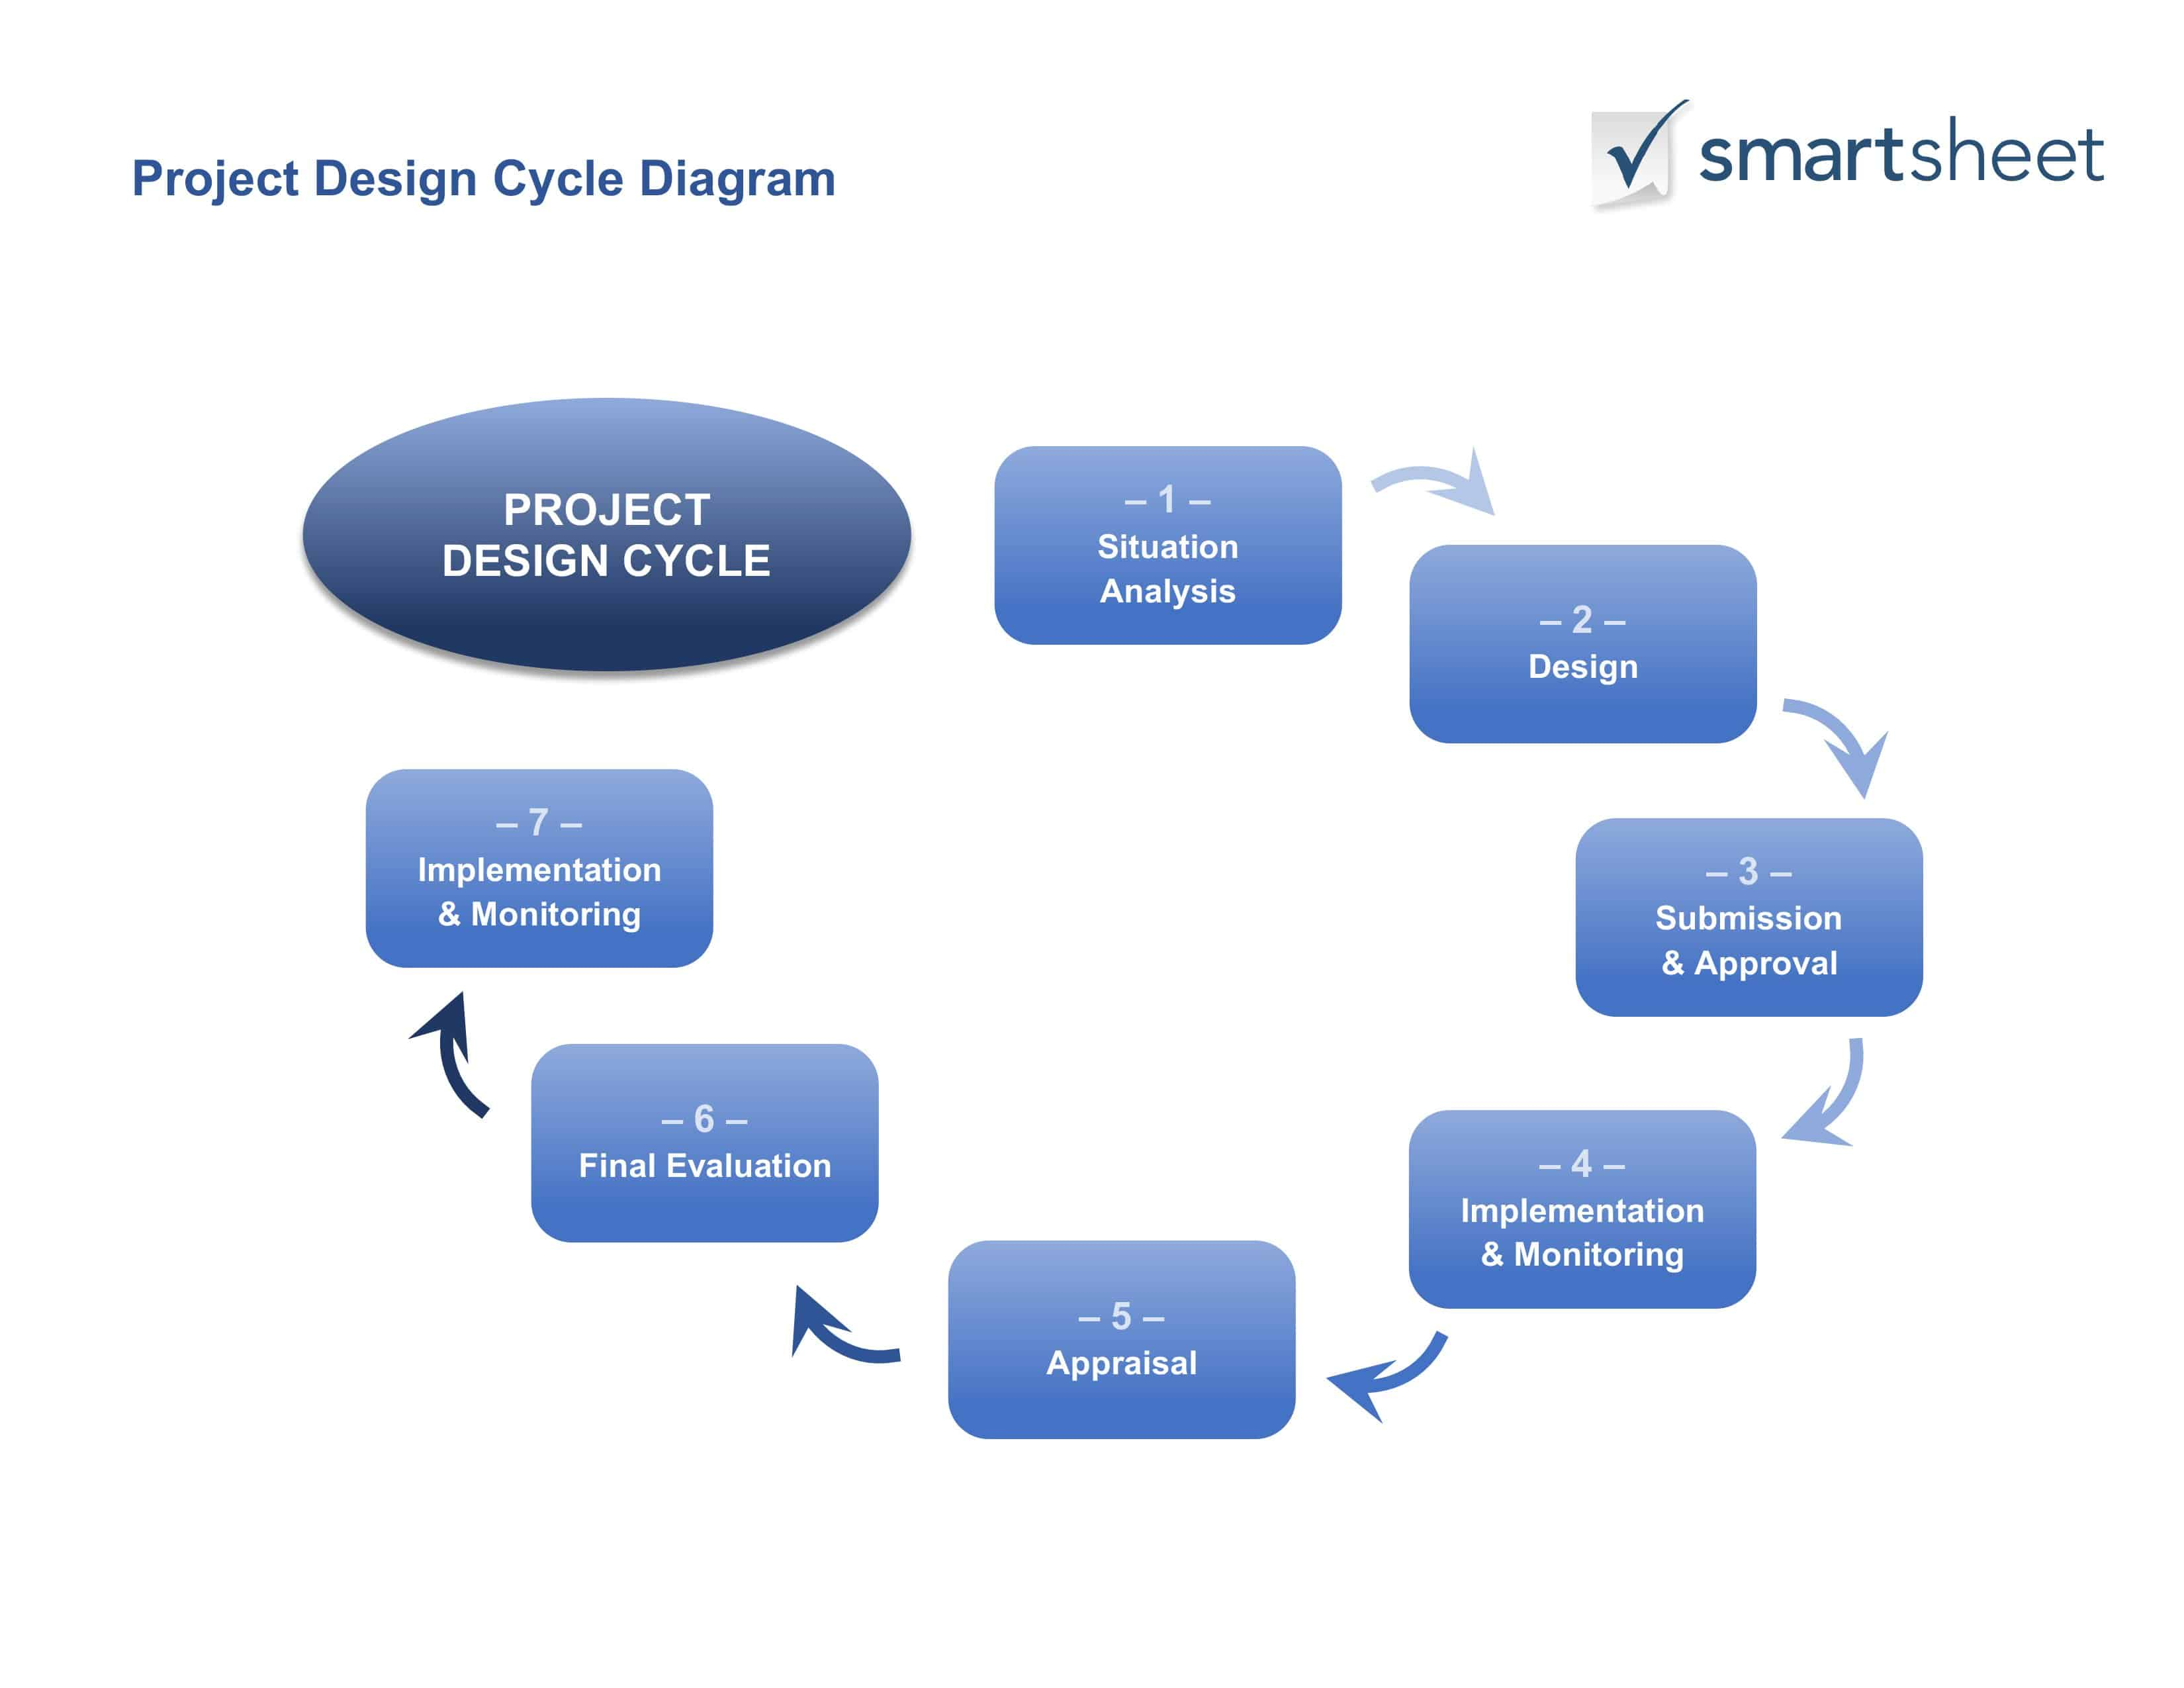 project impact diagram camper wiring guide for creating a design smartsheet